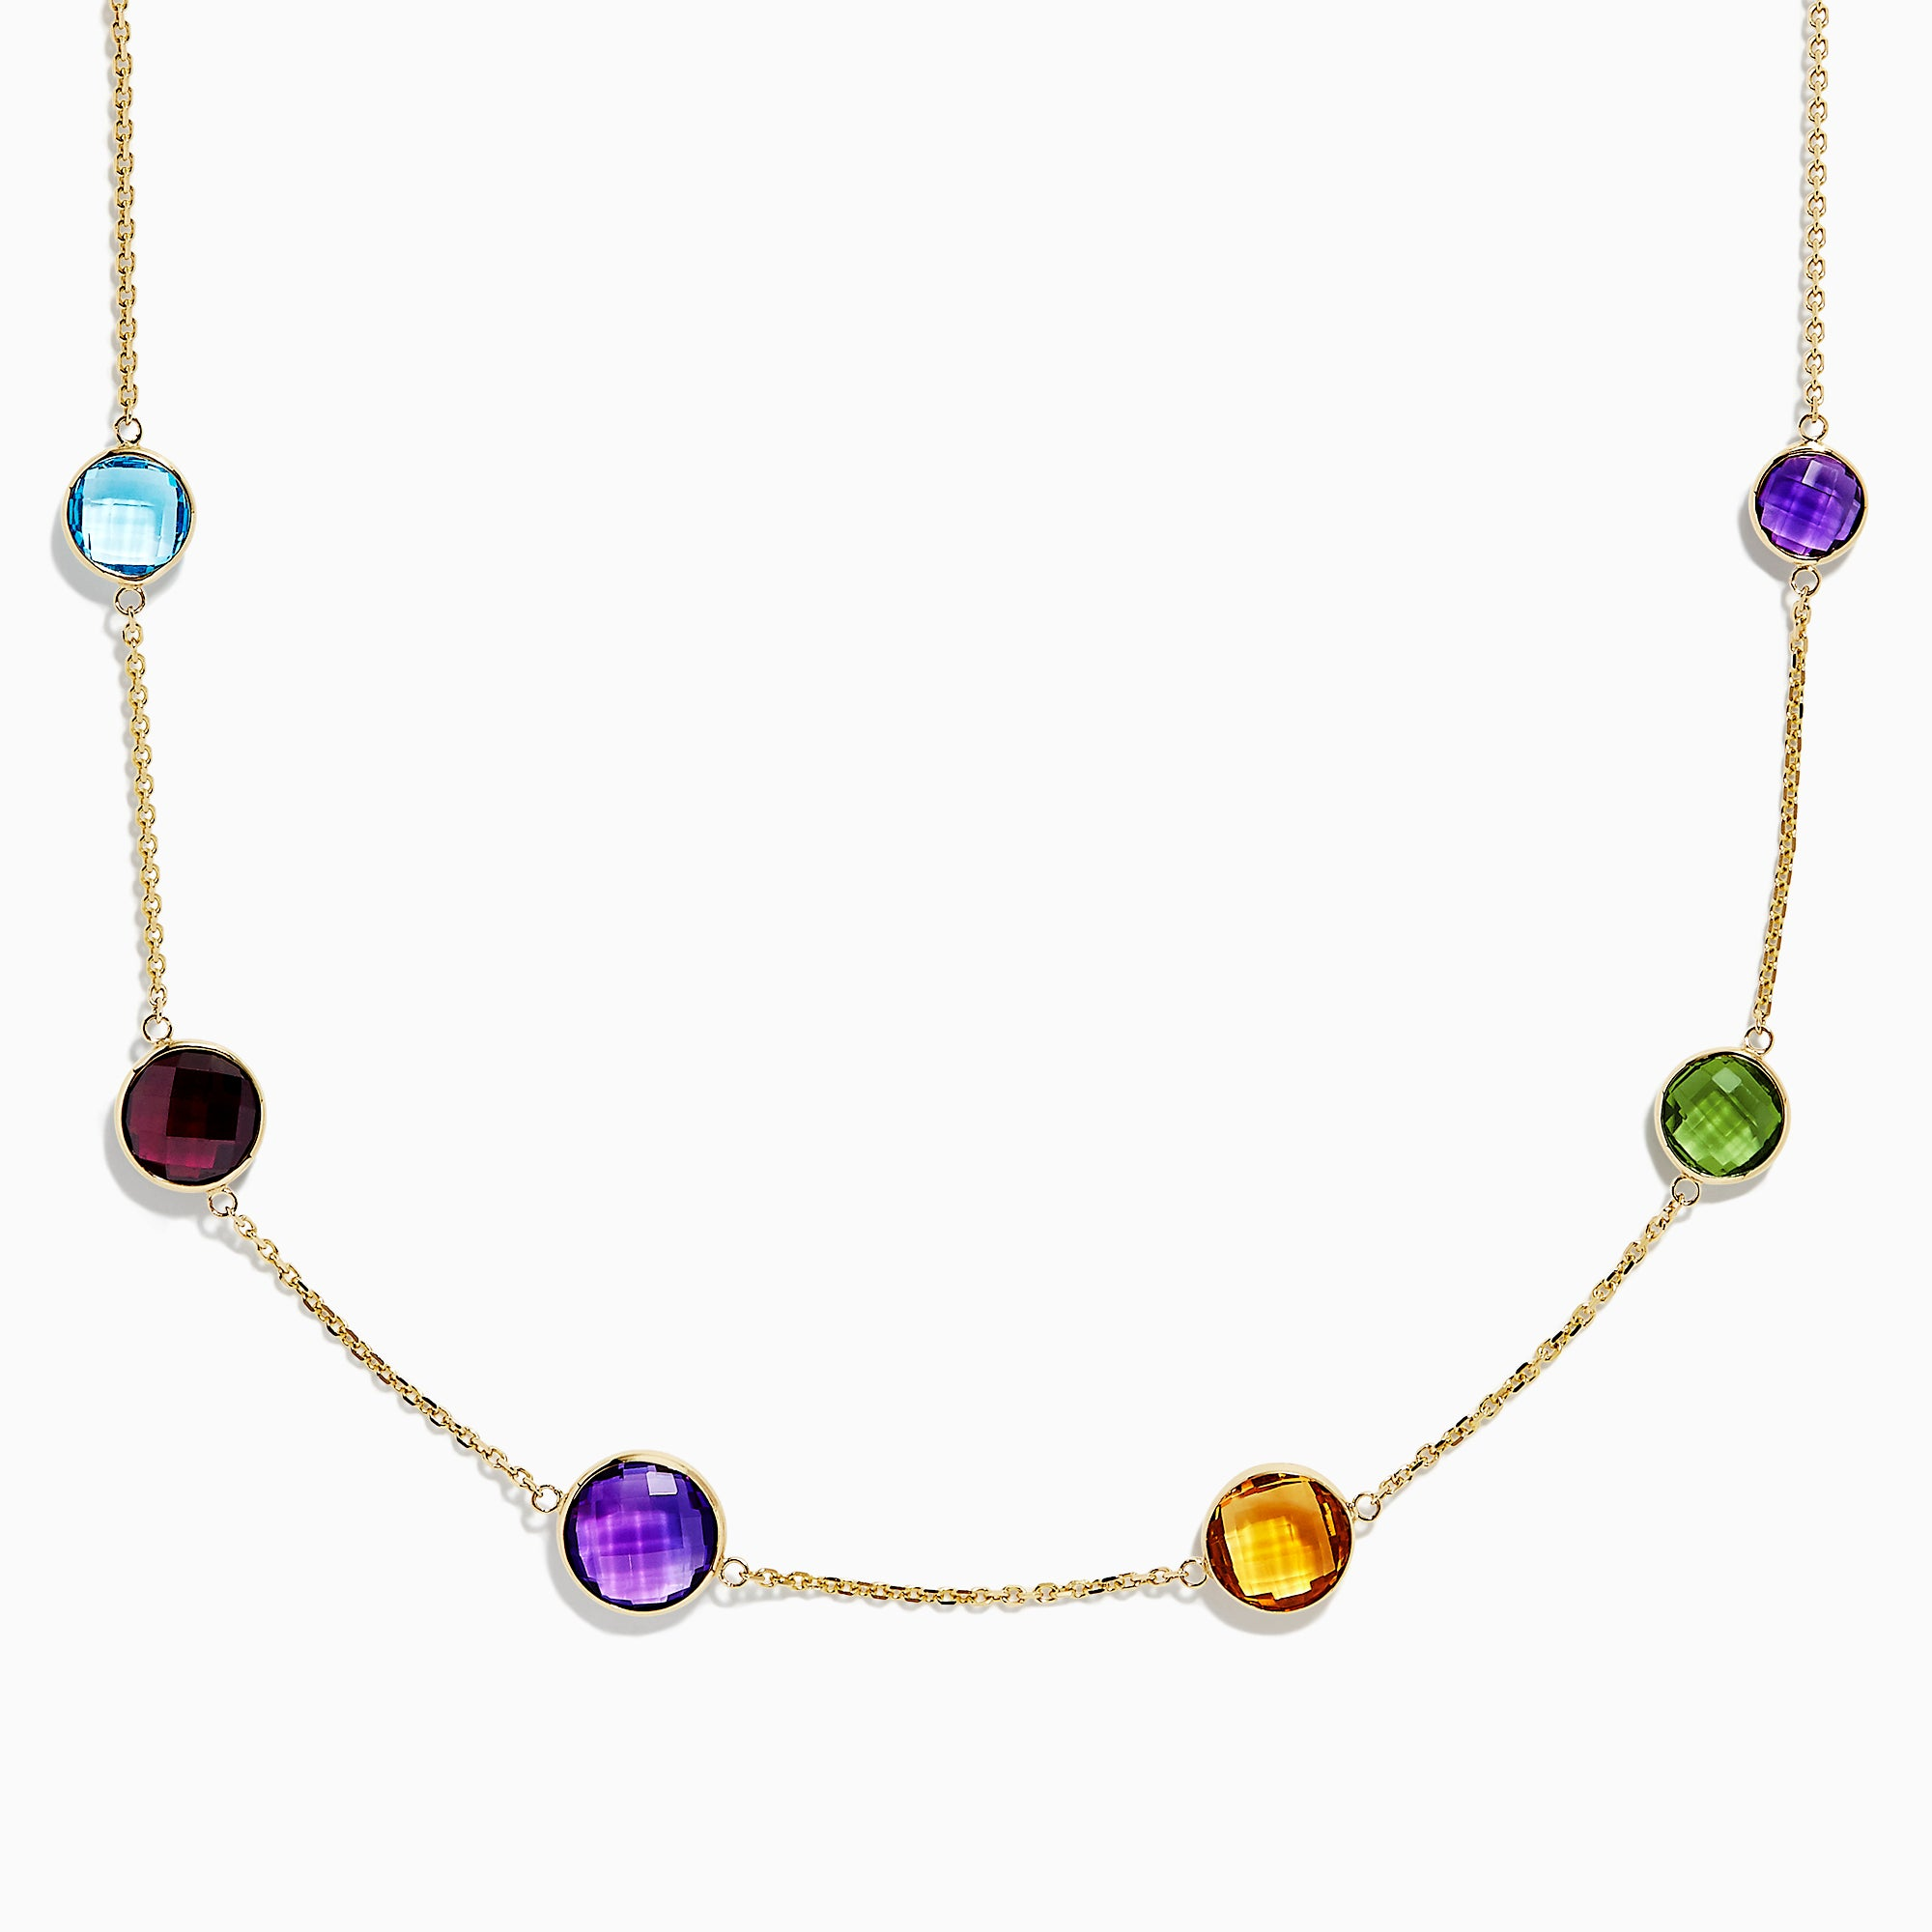 Effy Mosaic 14K Yellow Gold Multi Gemstone Station Necklace, 20.40 TCW